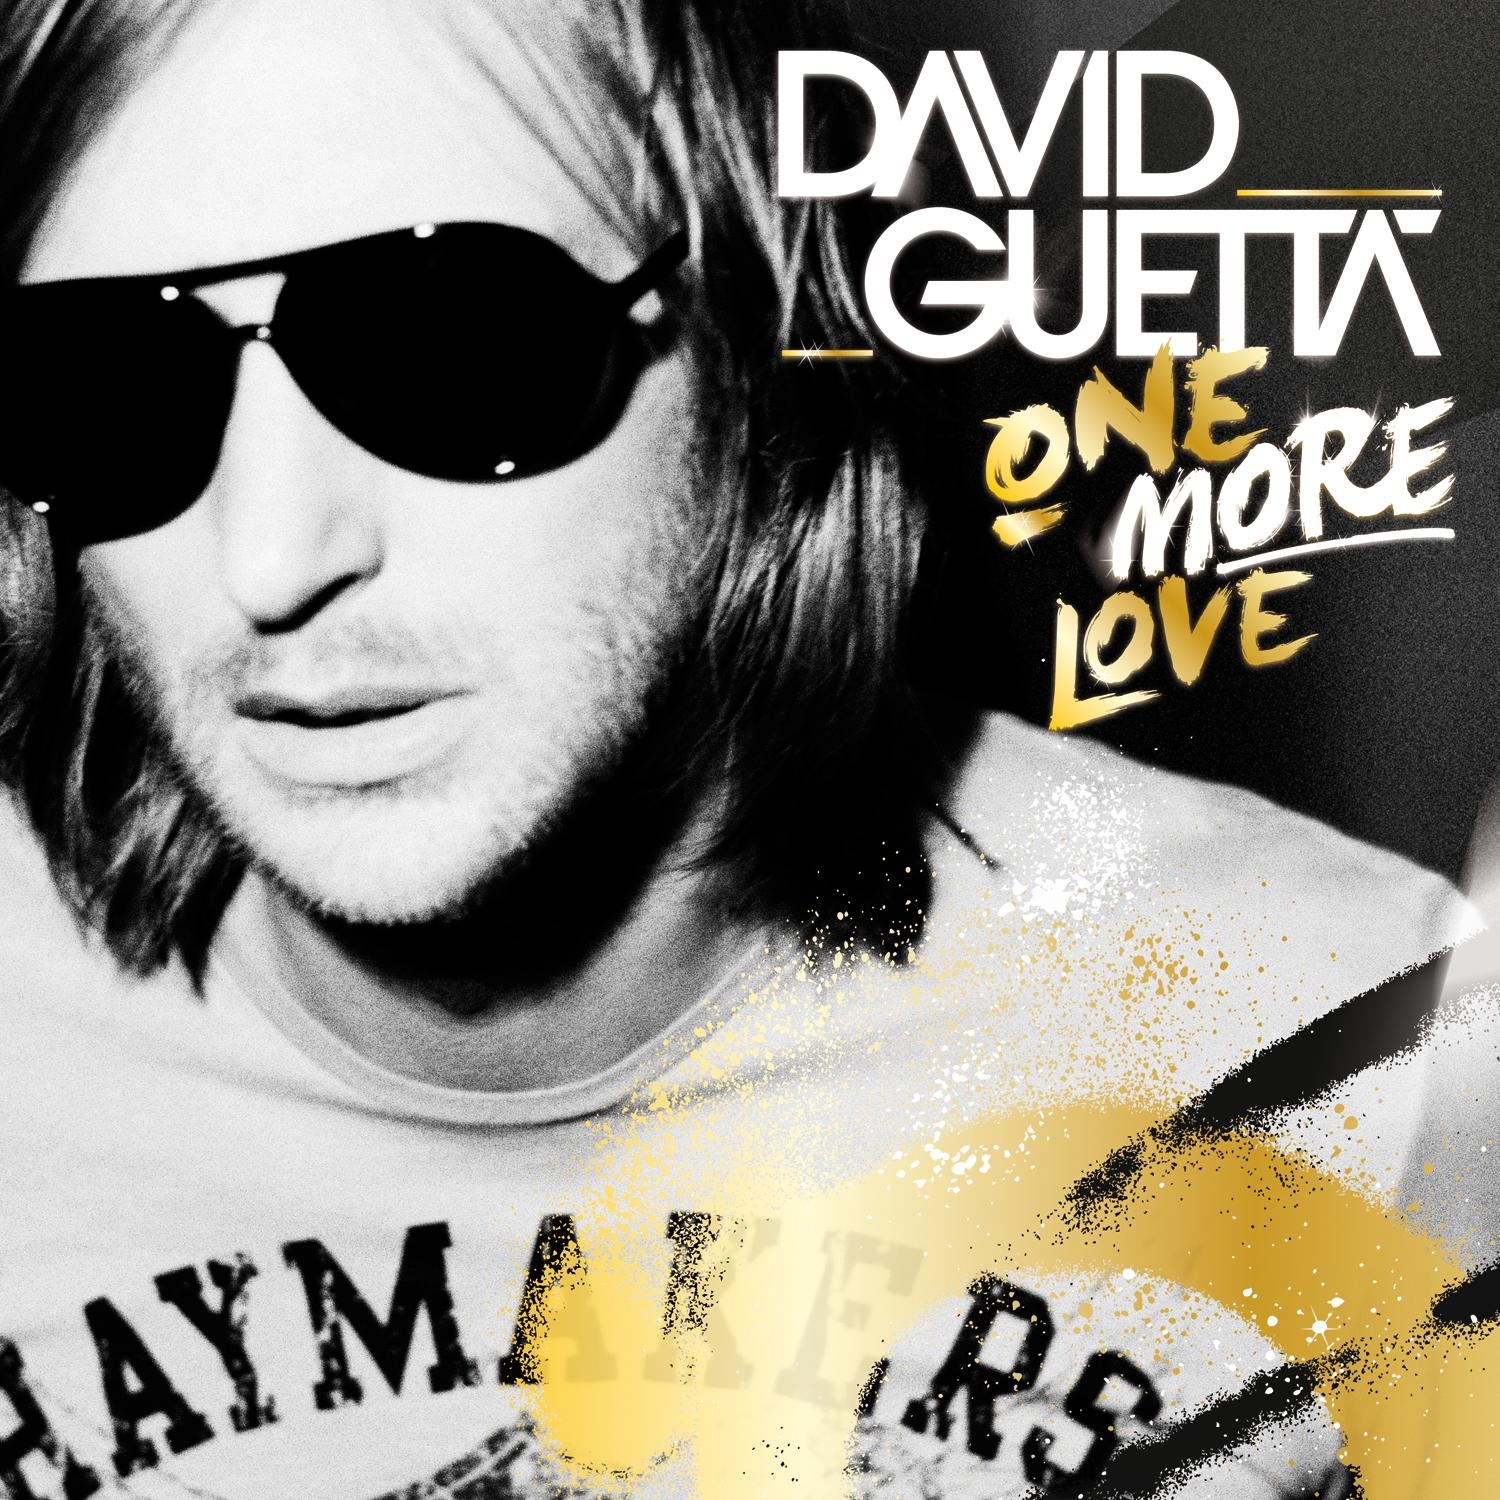 One more love (Deluxe edition)